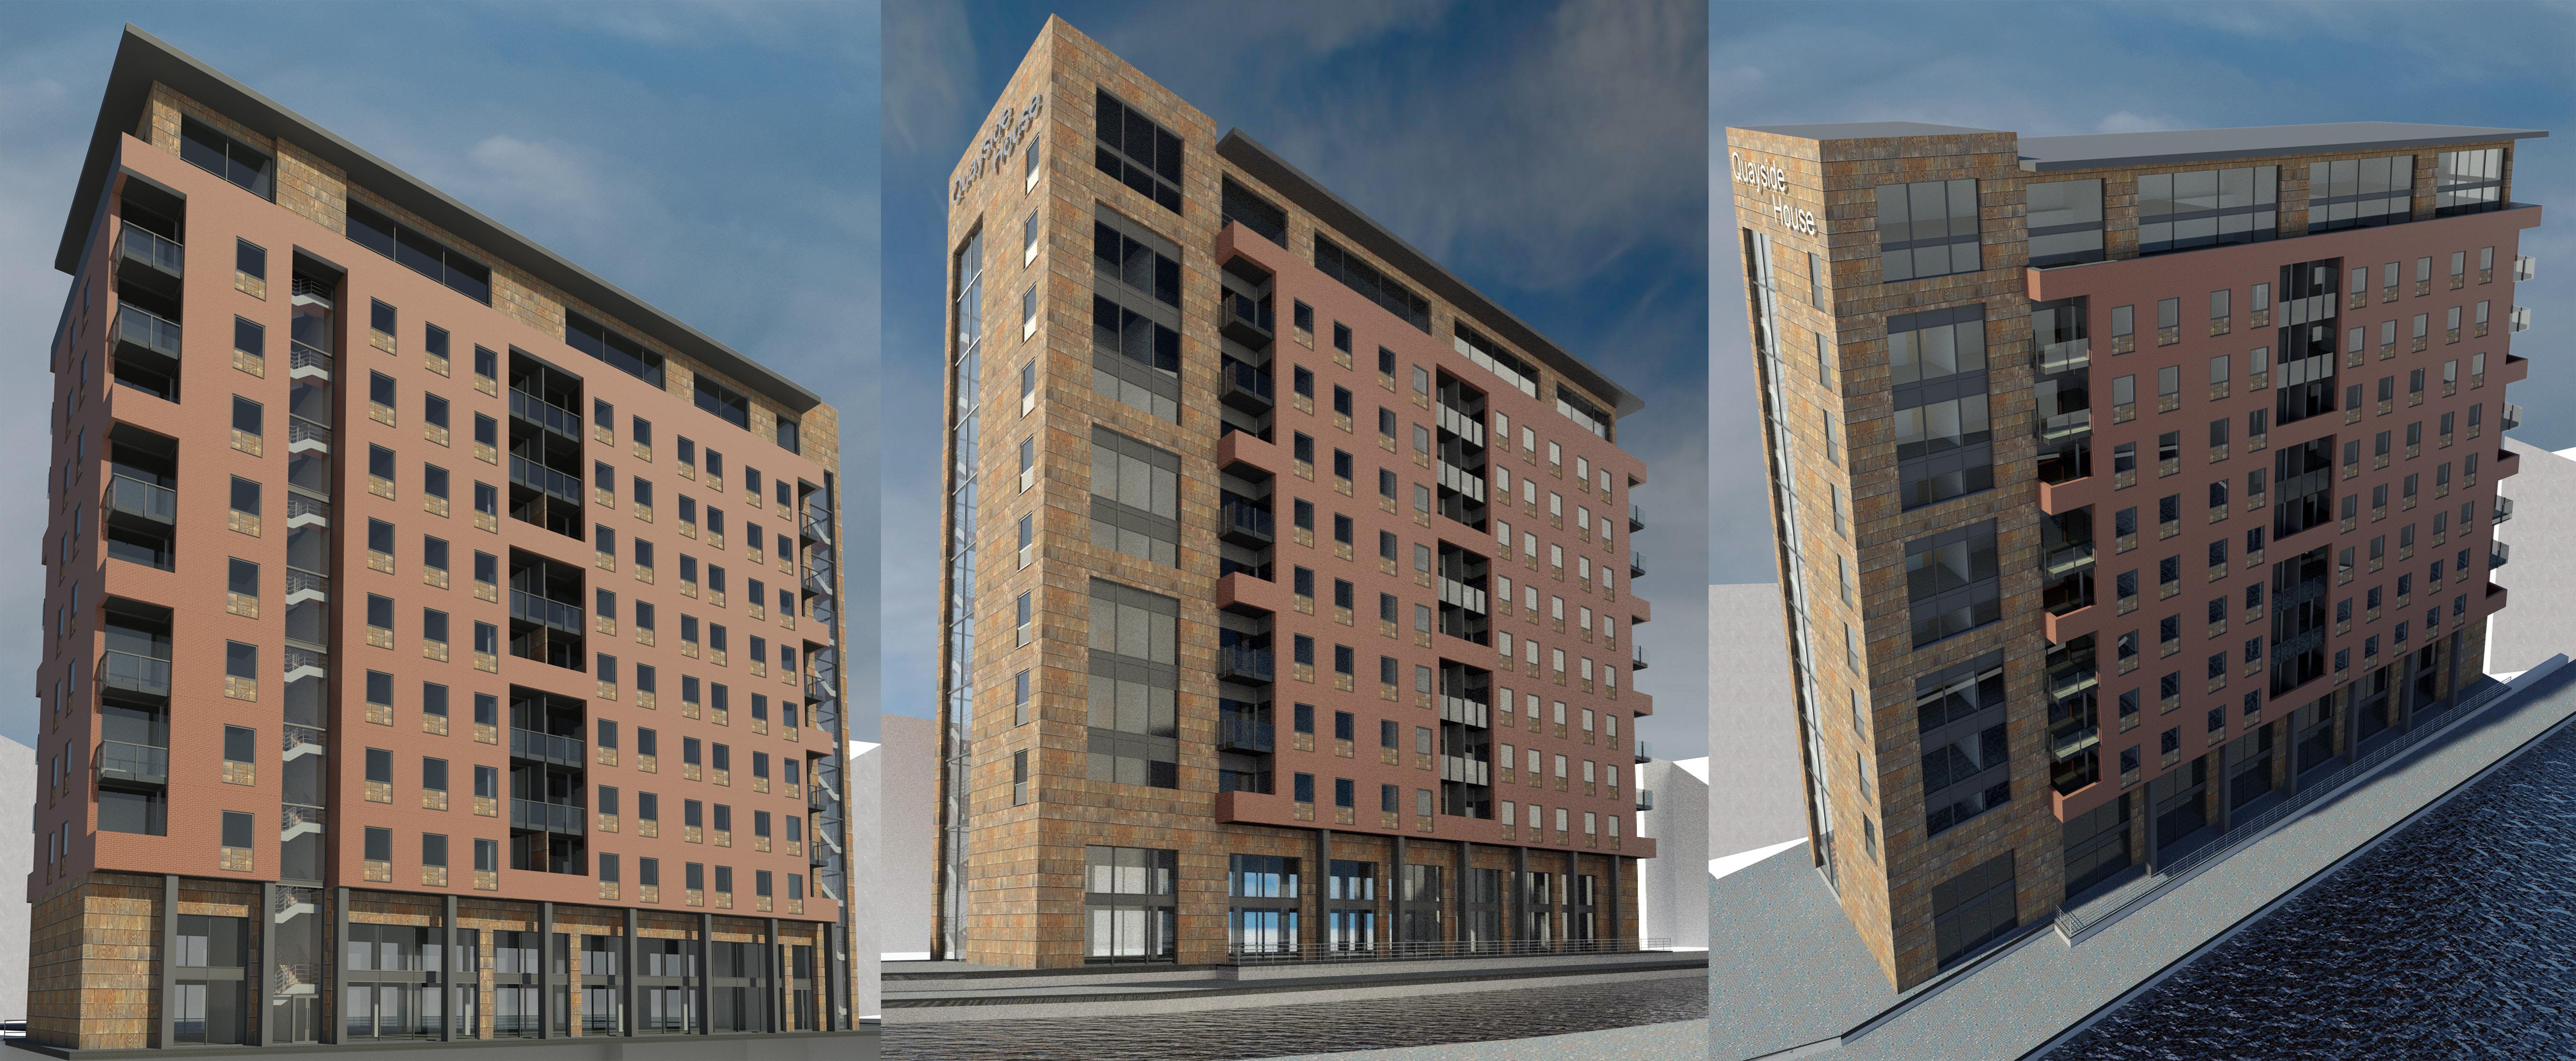 Niemen Architects Leeds West Yorkshire Mixed Use Concept Quayside Canal Wharfe BIM